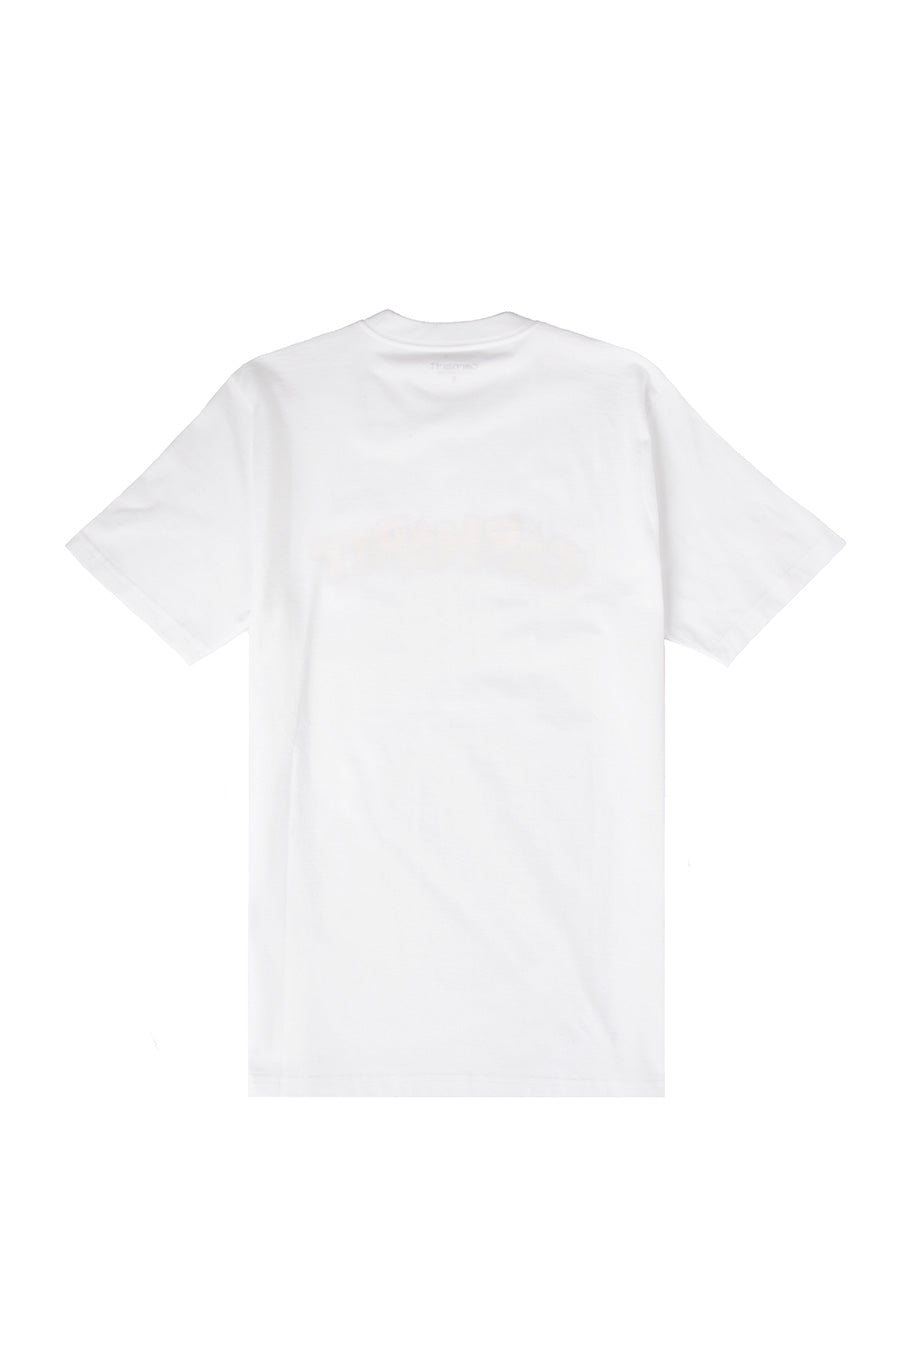 Carhartt WIP - White Loony Script T-Shirt | 1032 SPACE